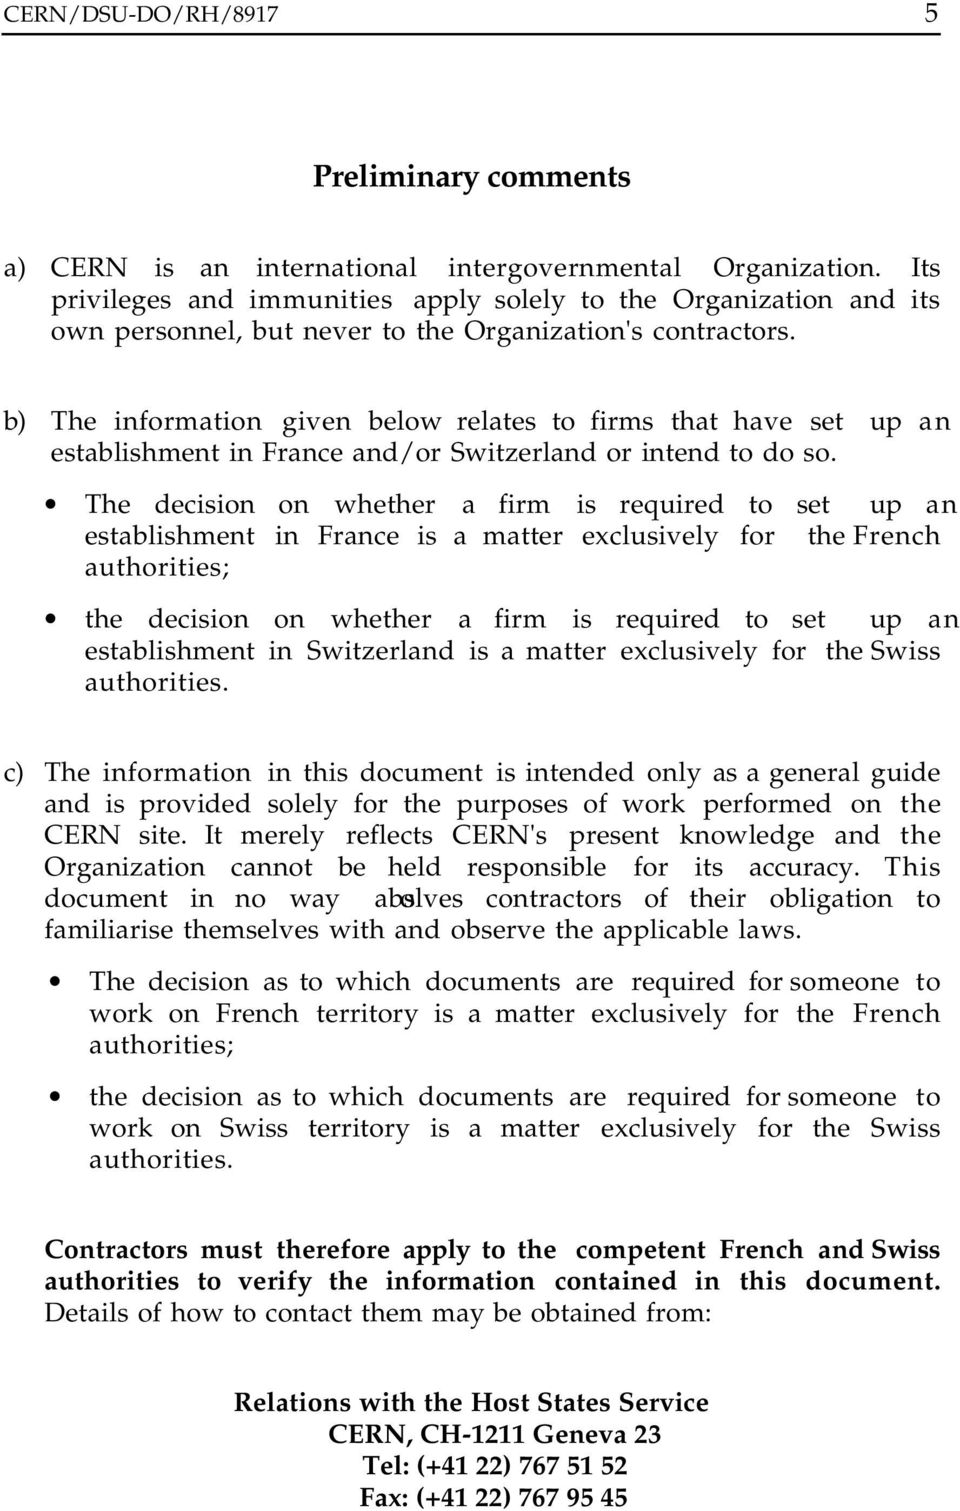 b) The information given below relates to firms that have set up an establishment in France and/or Switzerland or intend to do so.